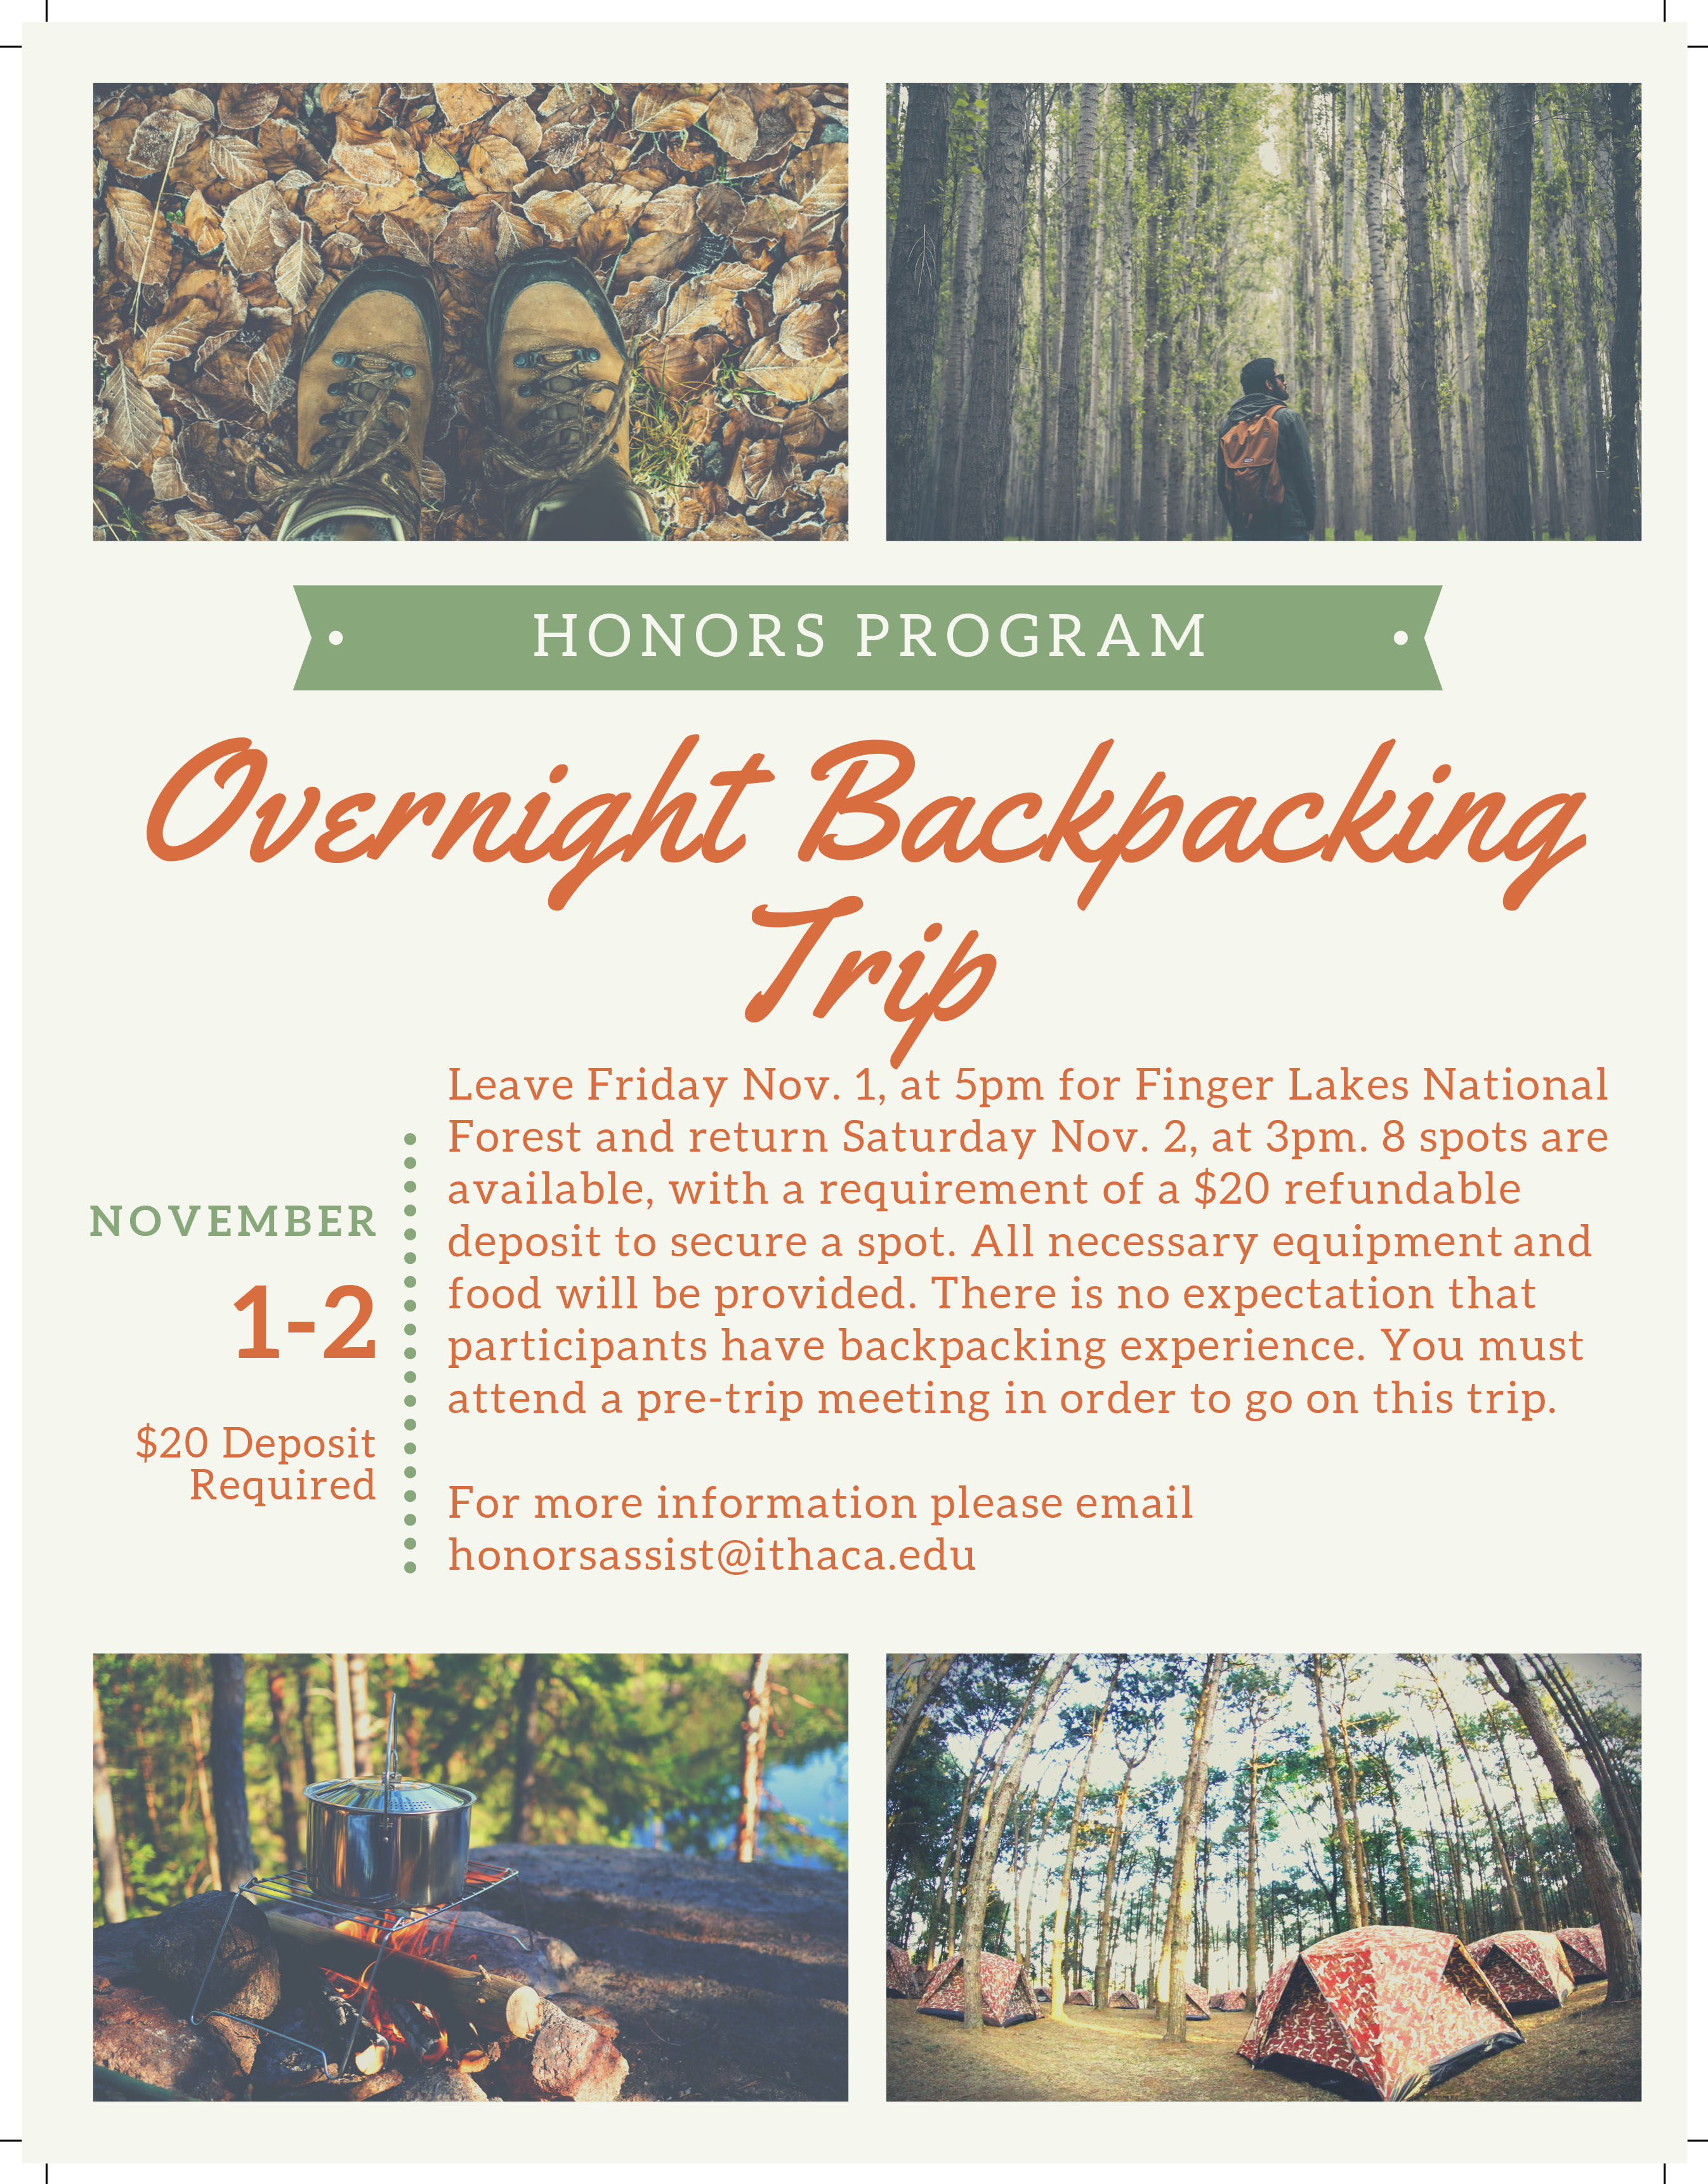 Overnight Backpacking Trip